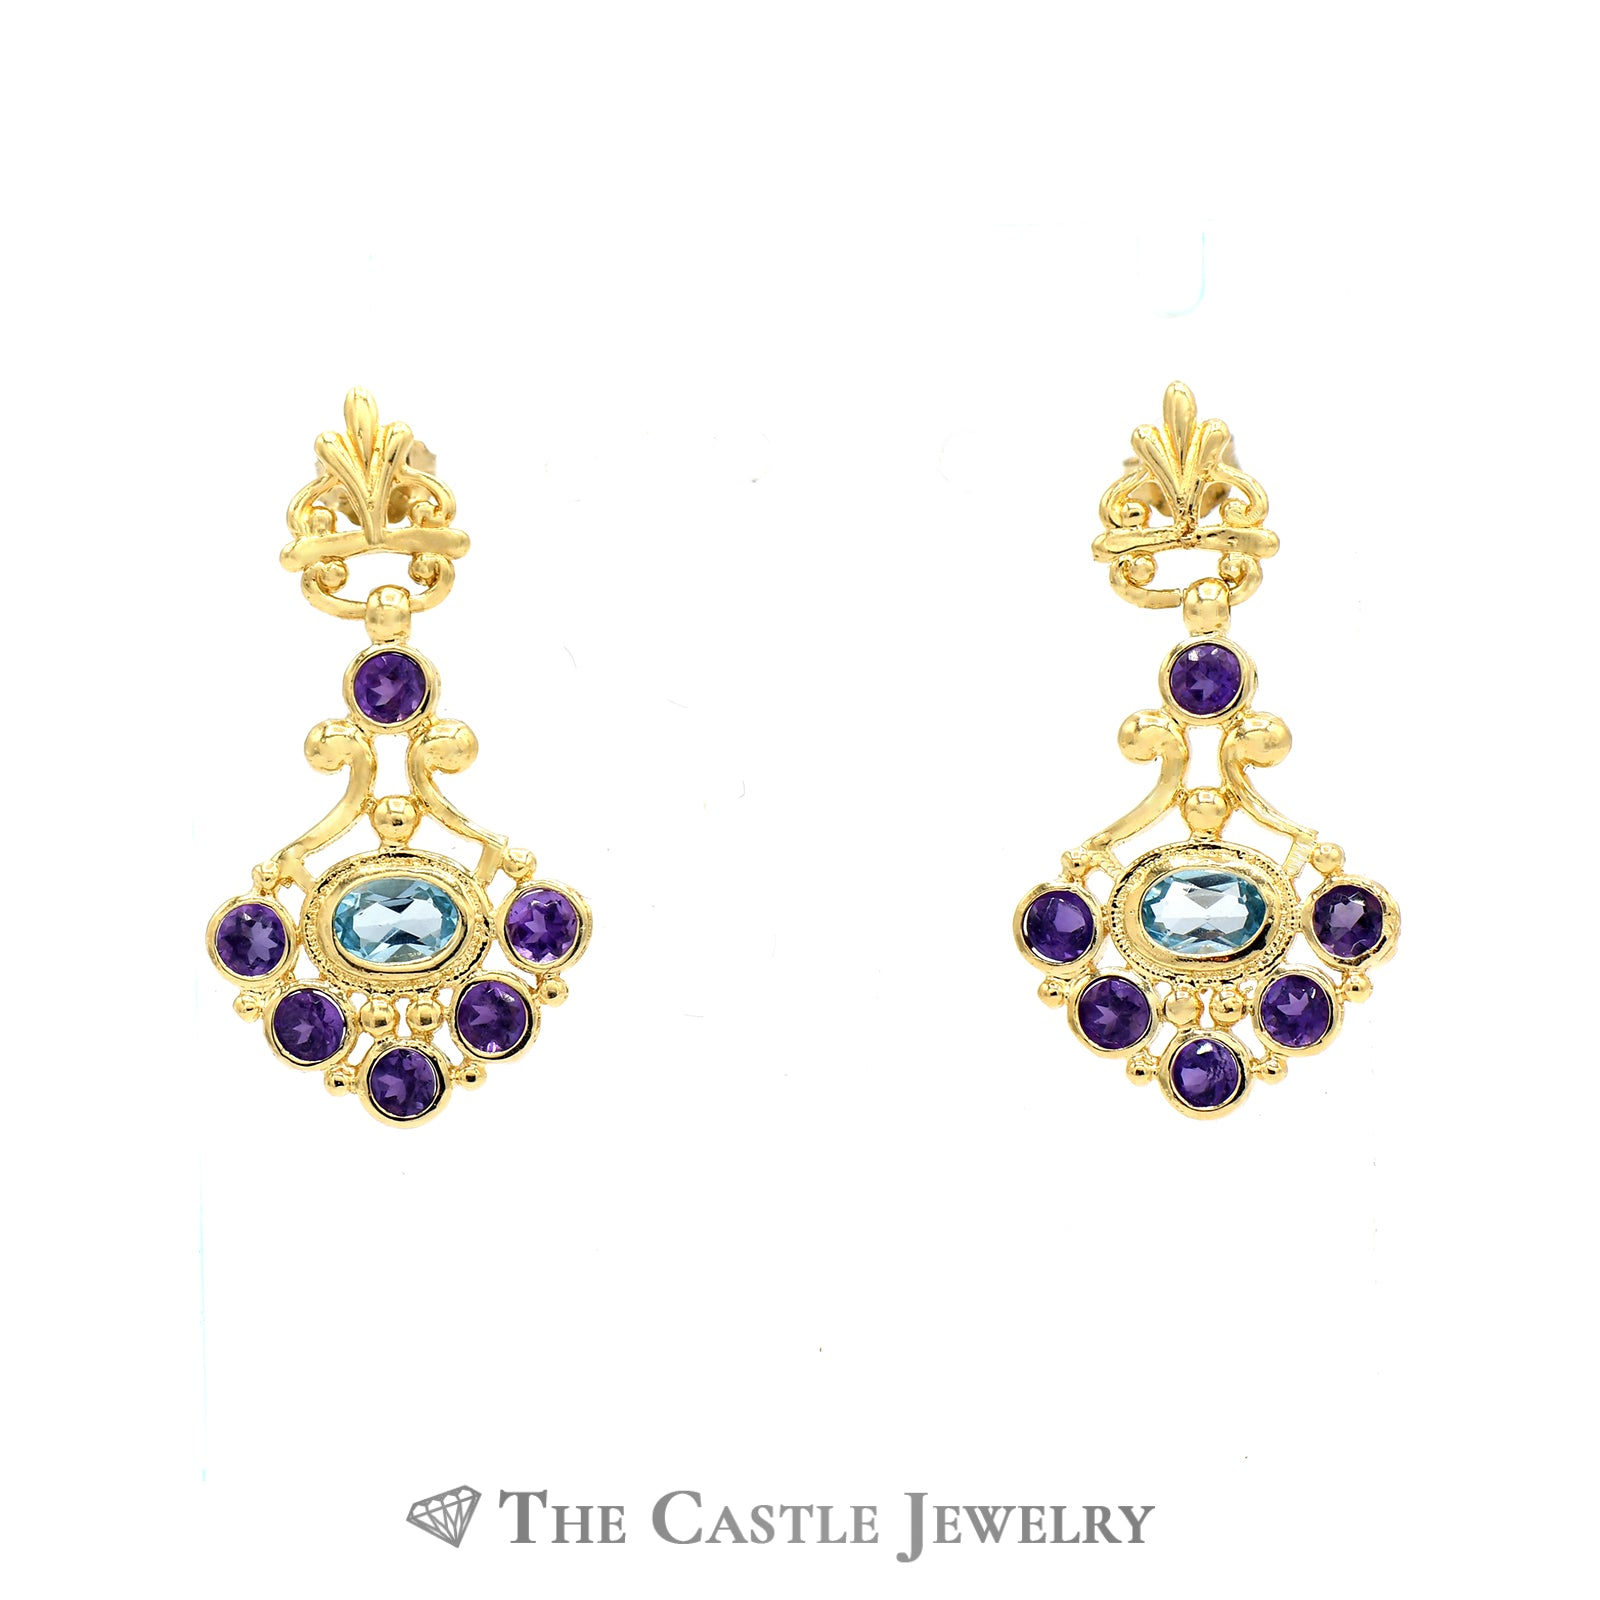 Bohemian Style Earrings in 14K Yellow Gold with Amethyst And Blue Topaz